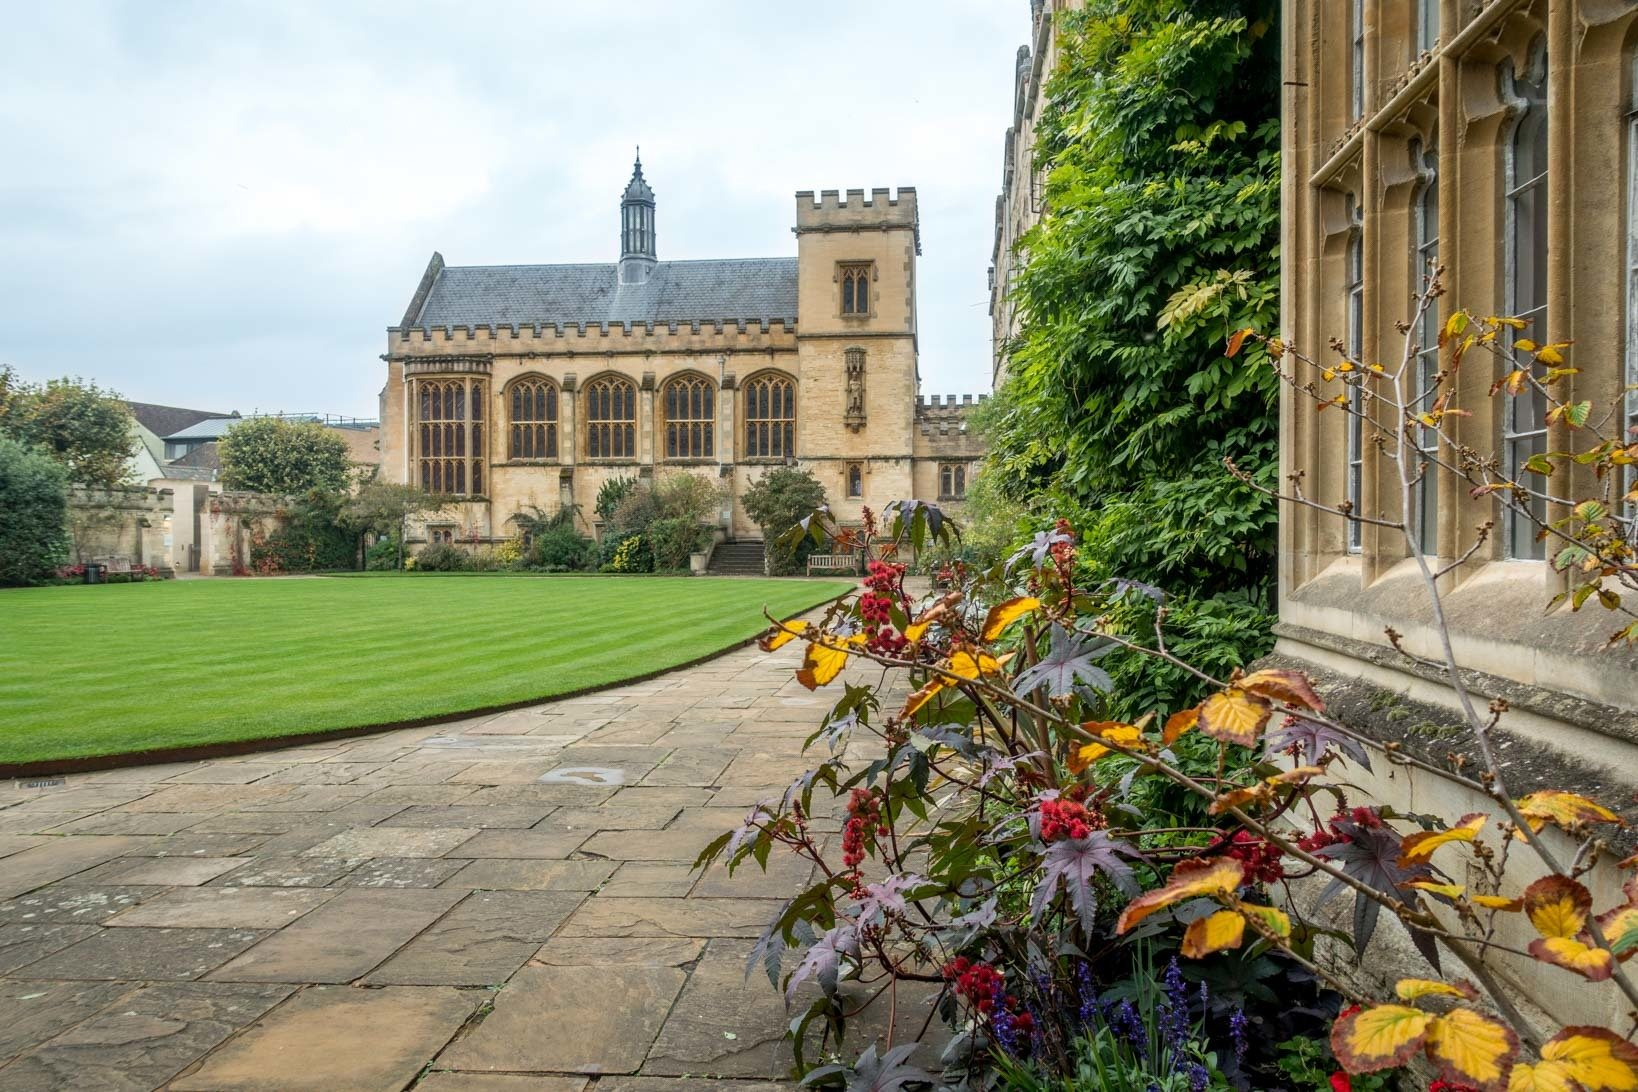 Lawn and buildings at Pembroke College in Oxford